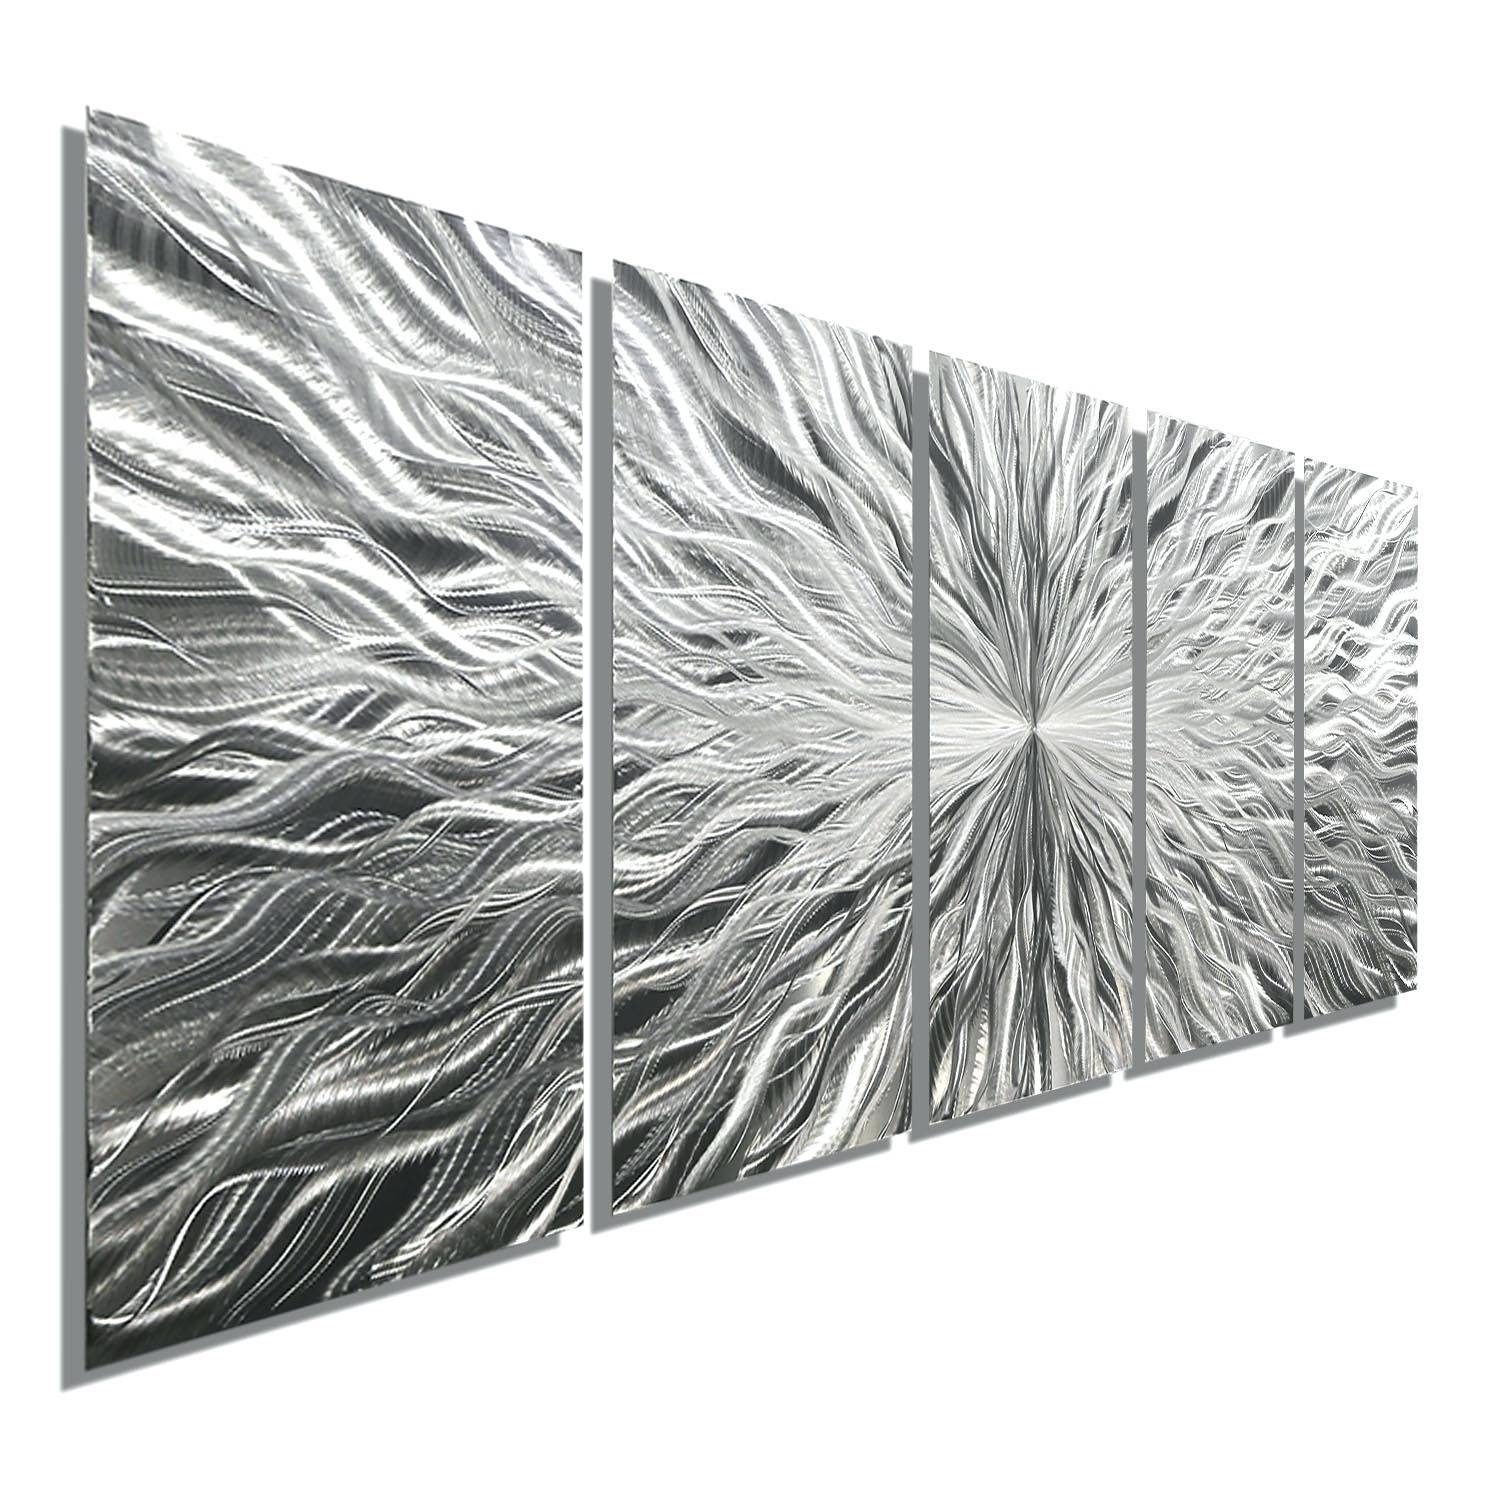 Wall Arts ~ Decorative Metal Wall Art Letters Decorative Metal Inside Current Brushed Metal Wall Art (View 9 of 20)